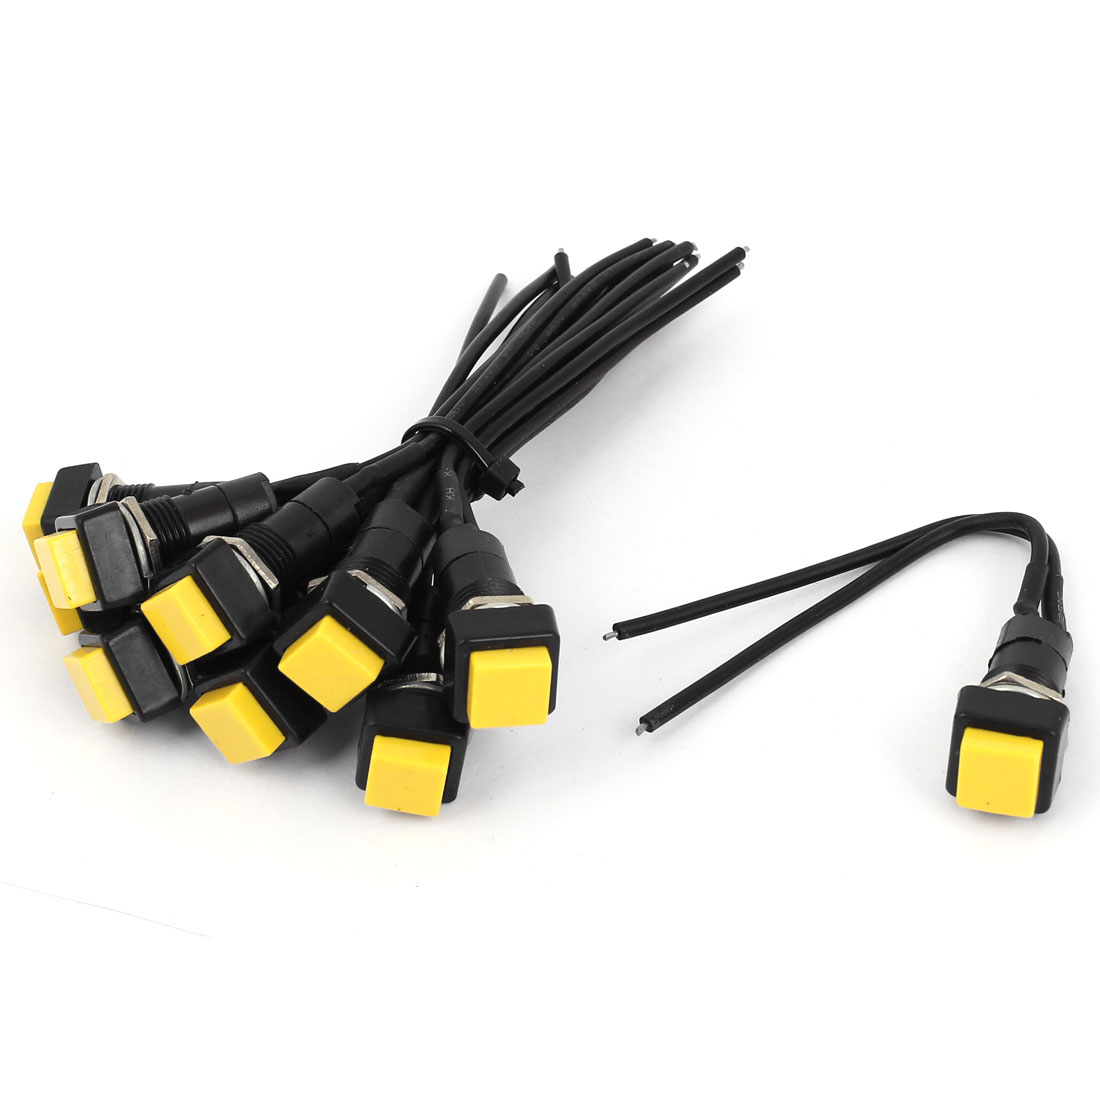 Car 10pcs Square Latching 2 Wires Push Button Switch DC 12V Yellow